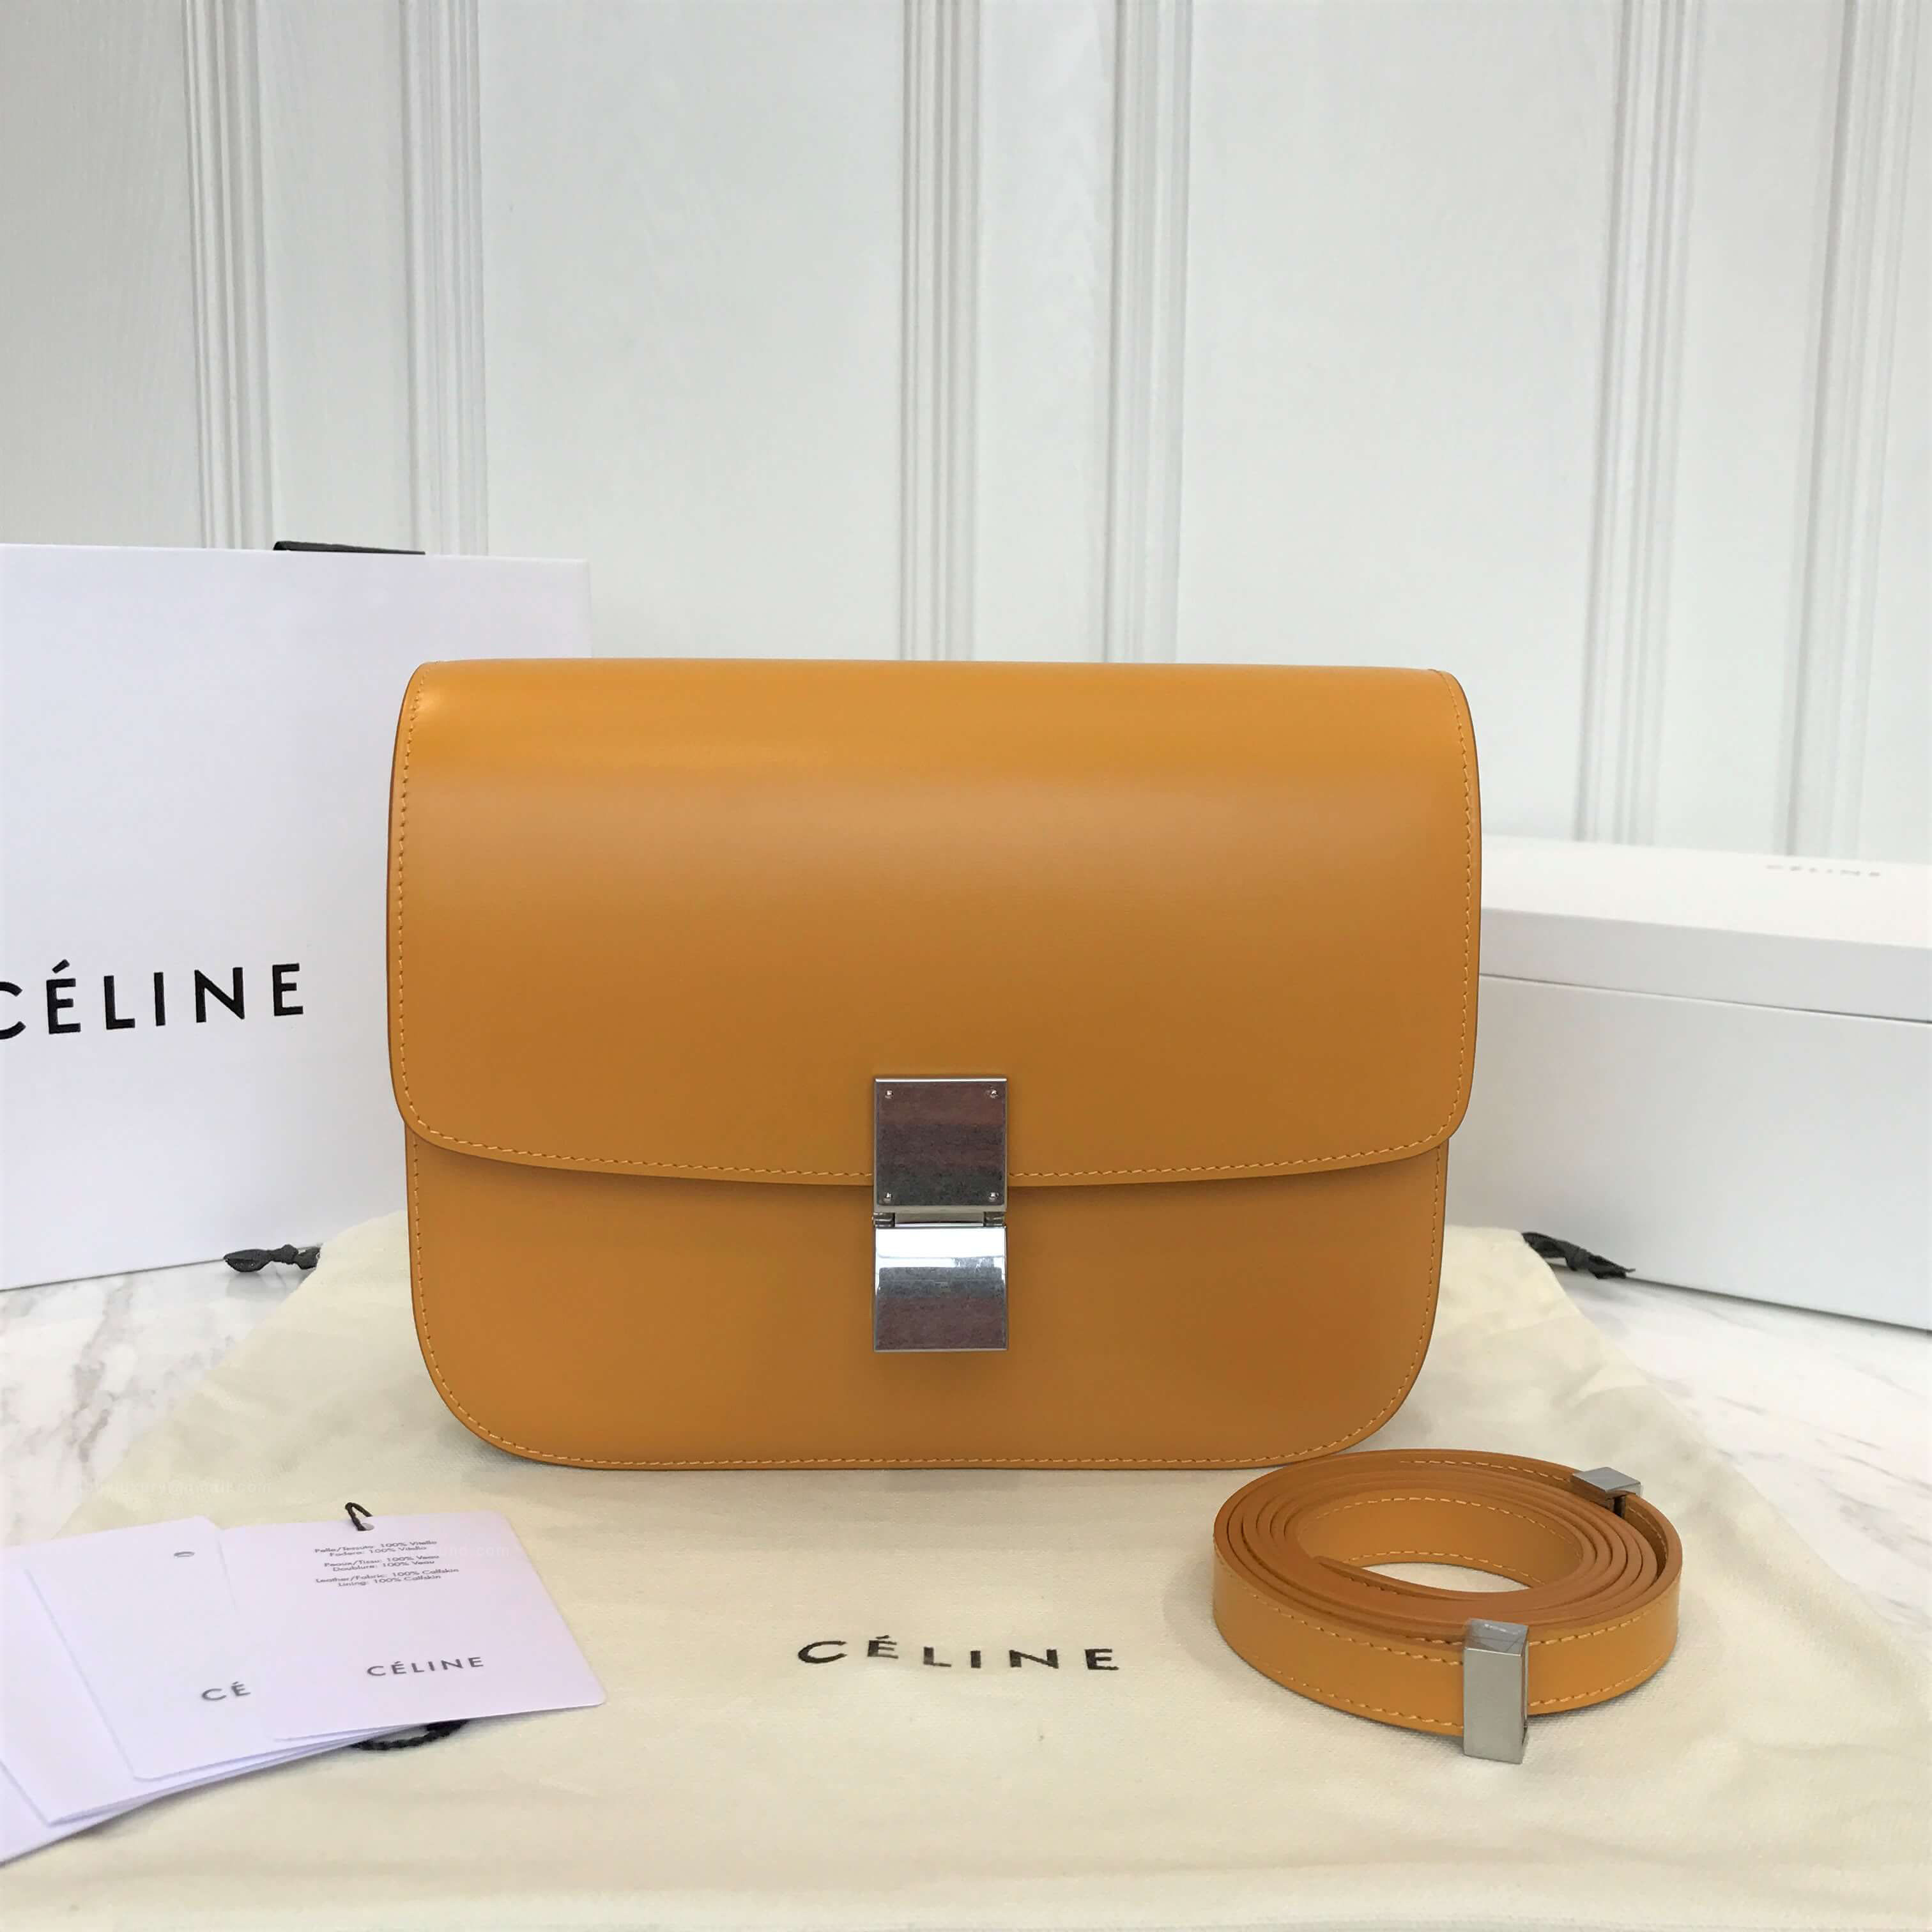 Celine Classic Box Bag Medium in Sunflower Liege Calfskin